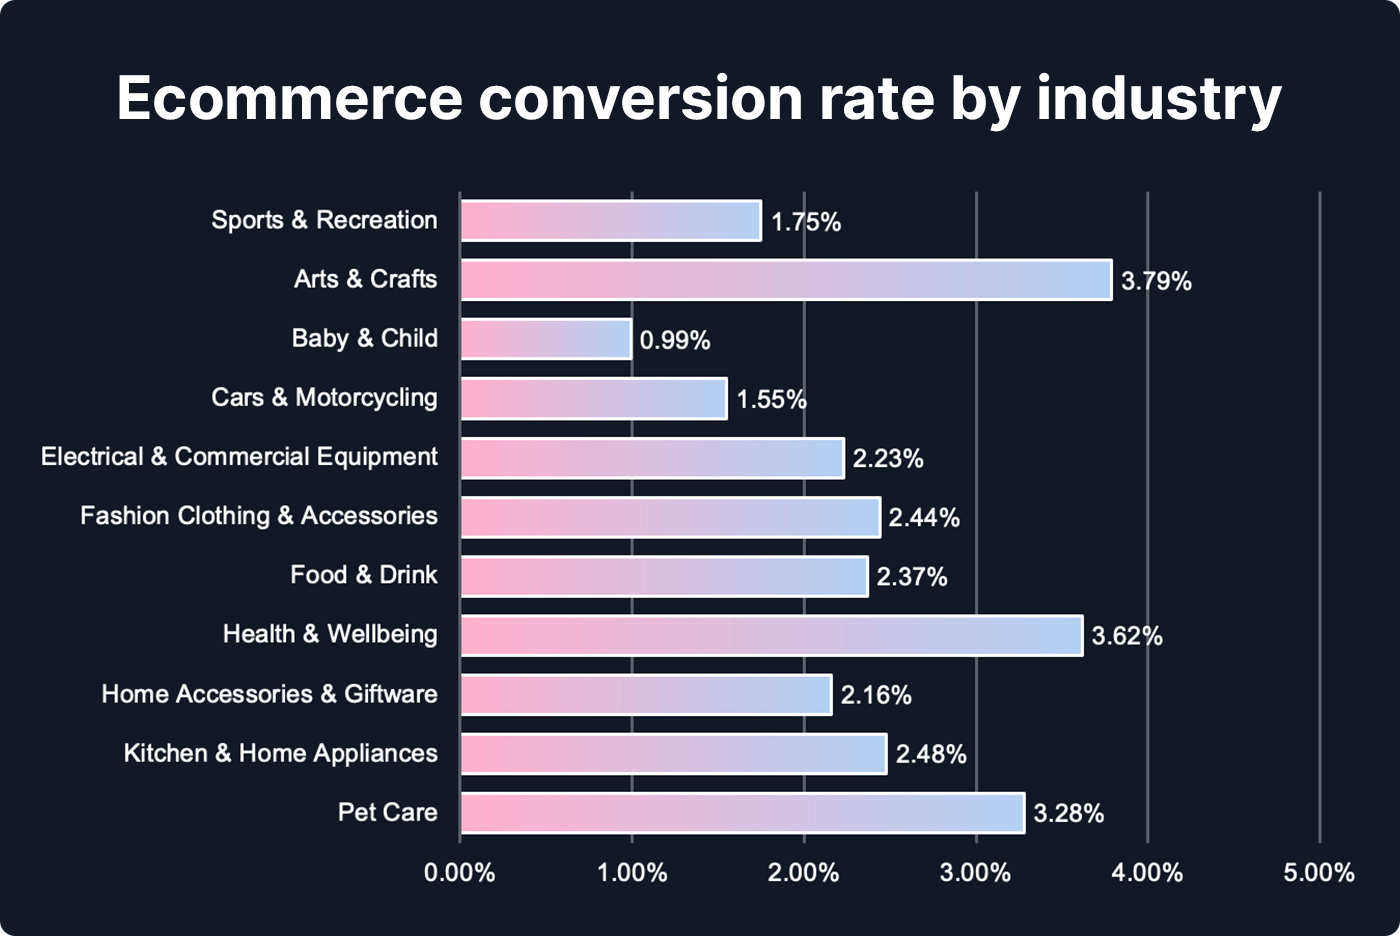 Chart showing ecommerce conversion rate by industry